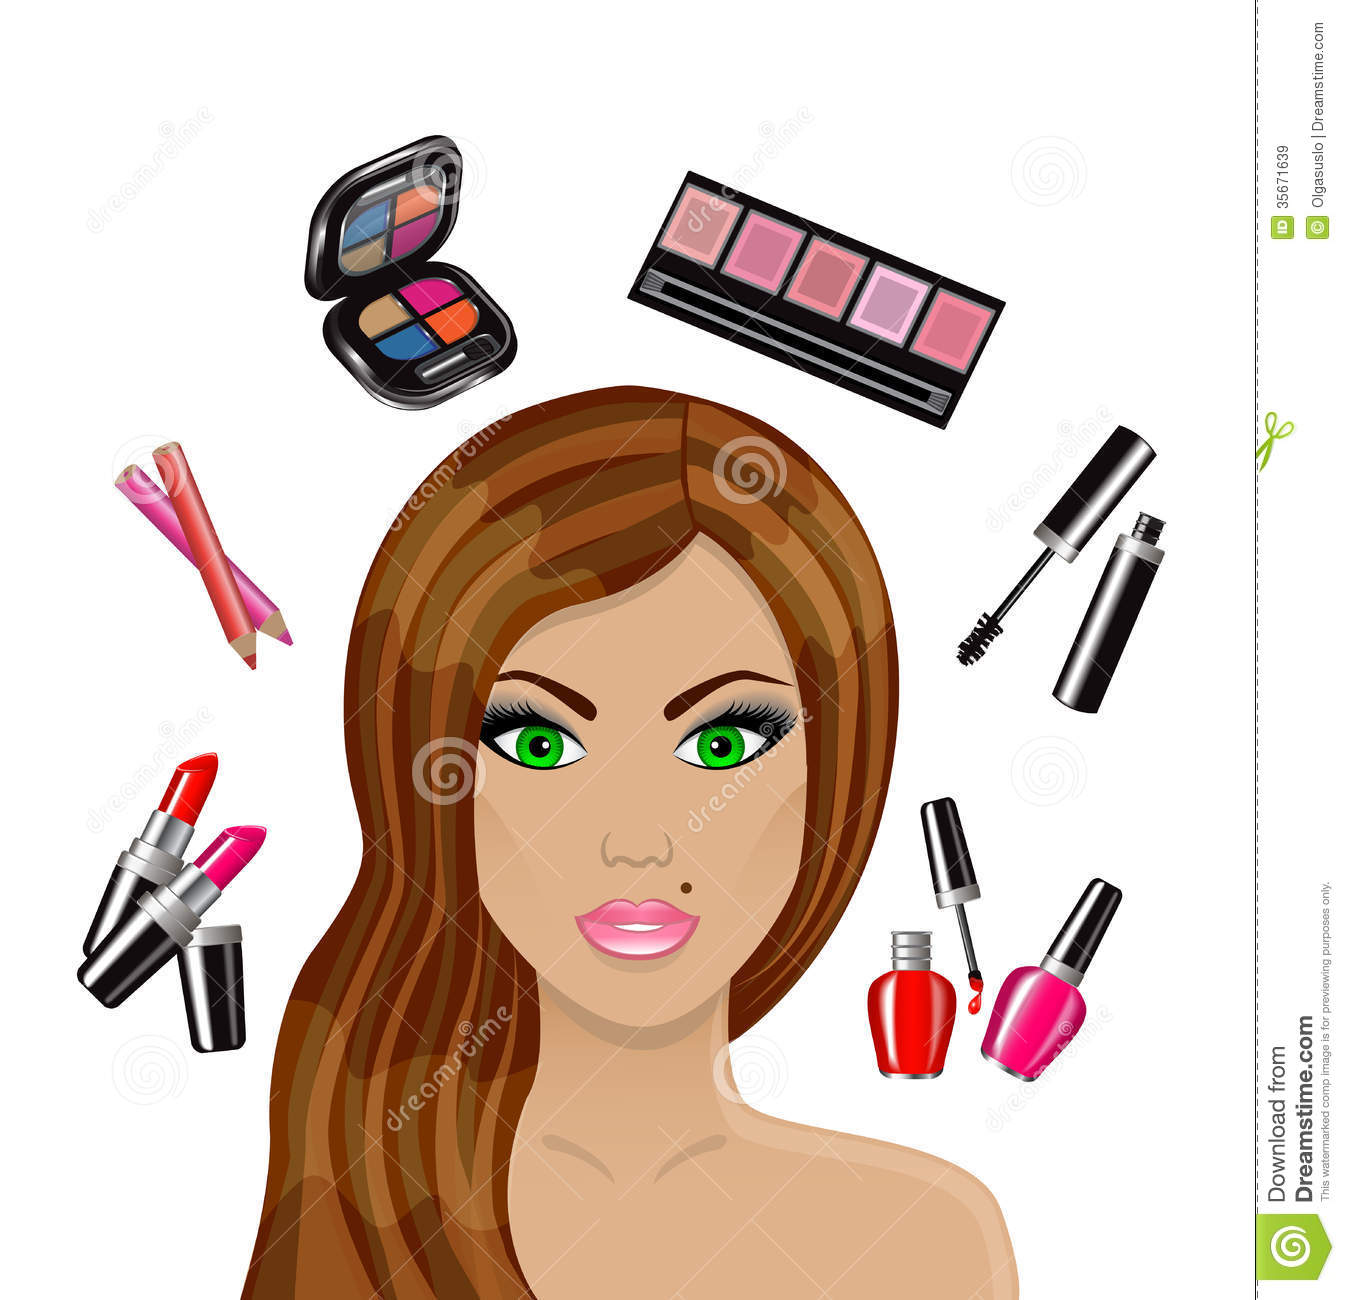 Image result for cartoon image girl putting up makeup